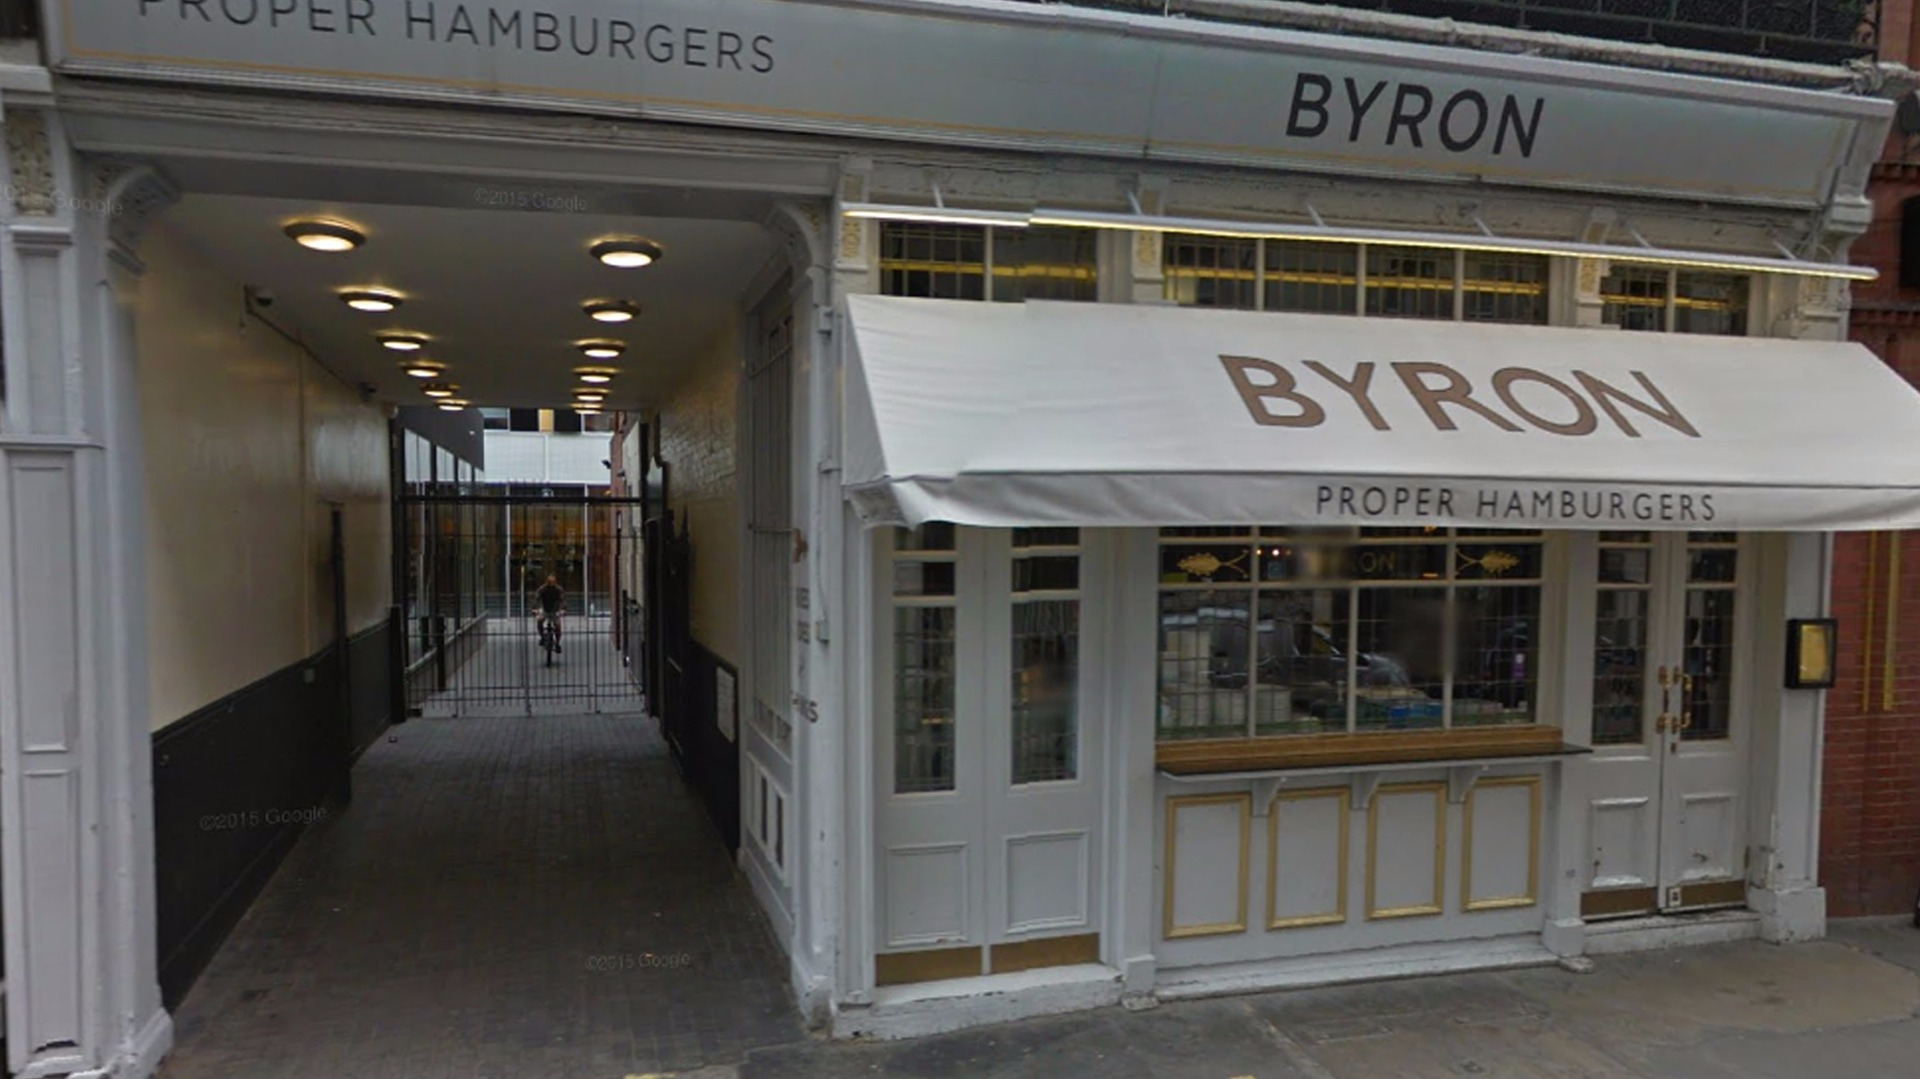 Dozens of workers at byron burger chain held for immigration offences london itv news - London immigration office ...